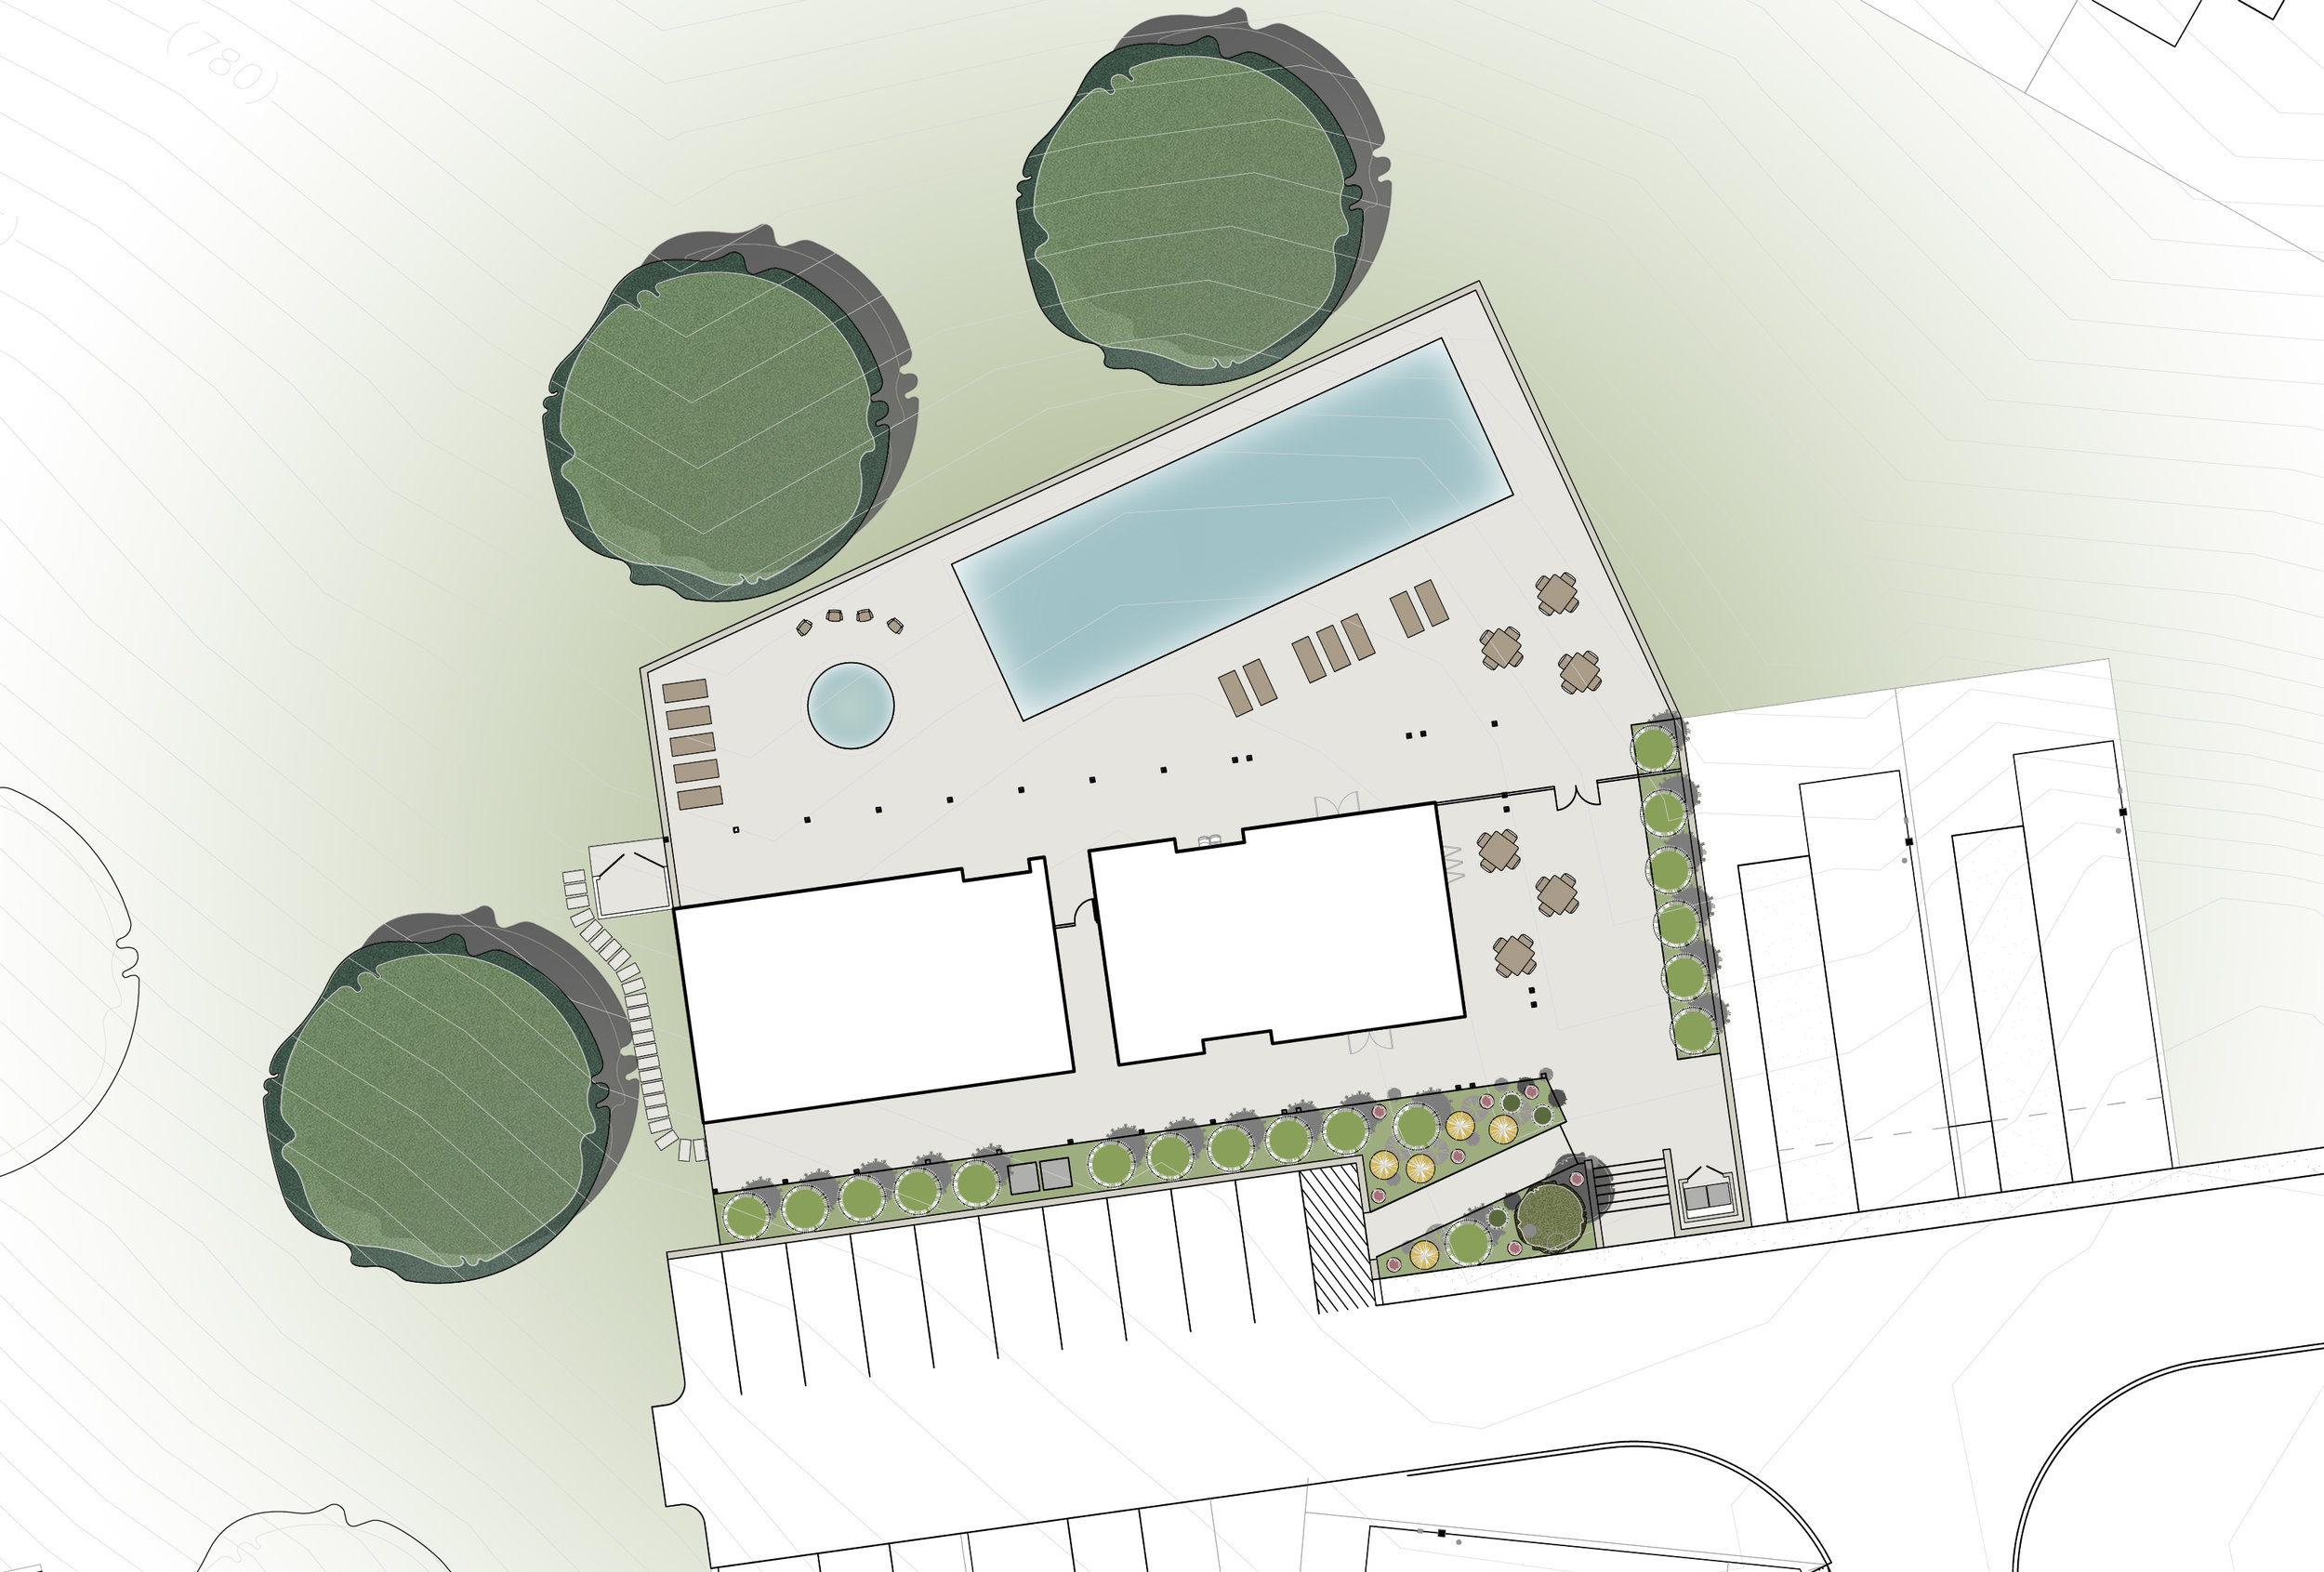 Cava Robles Pool Site Plan Paso Robles Landscape Architecture.jpg